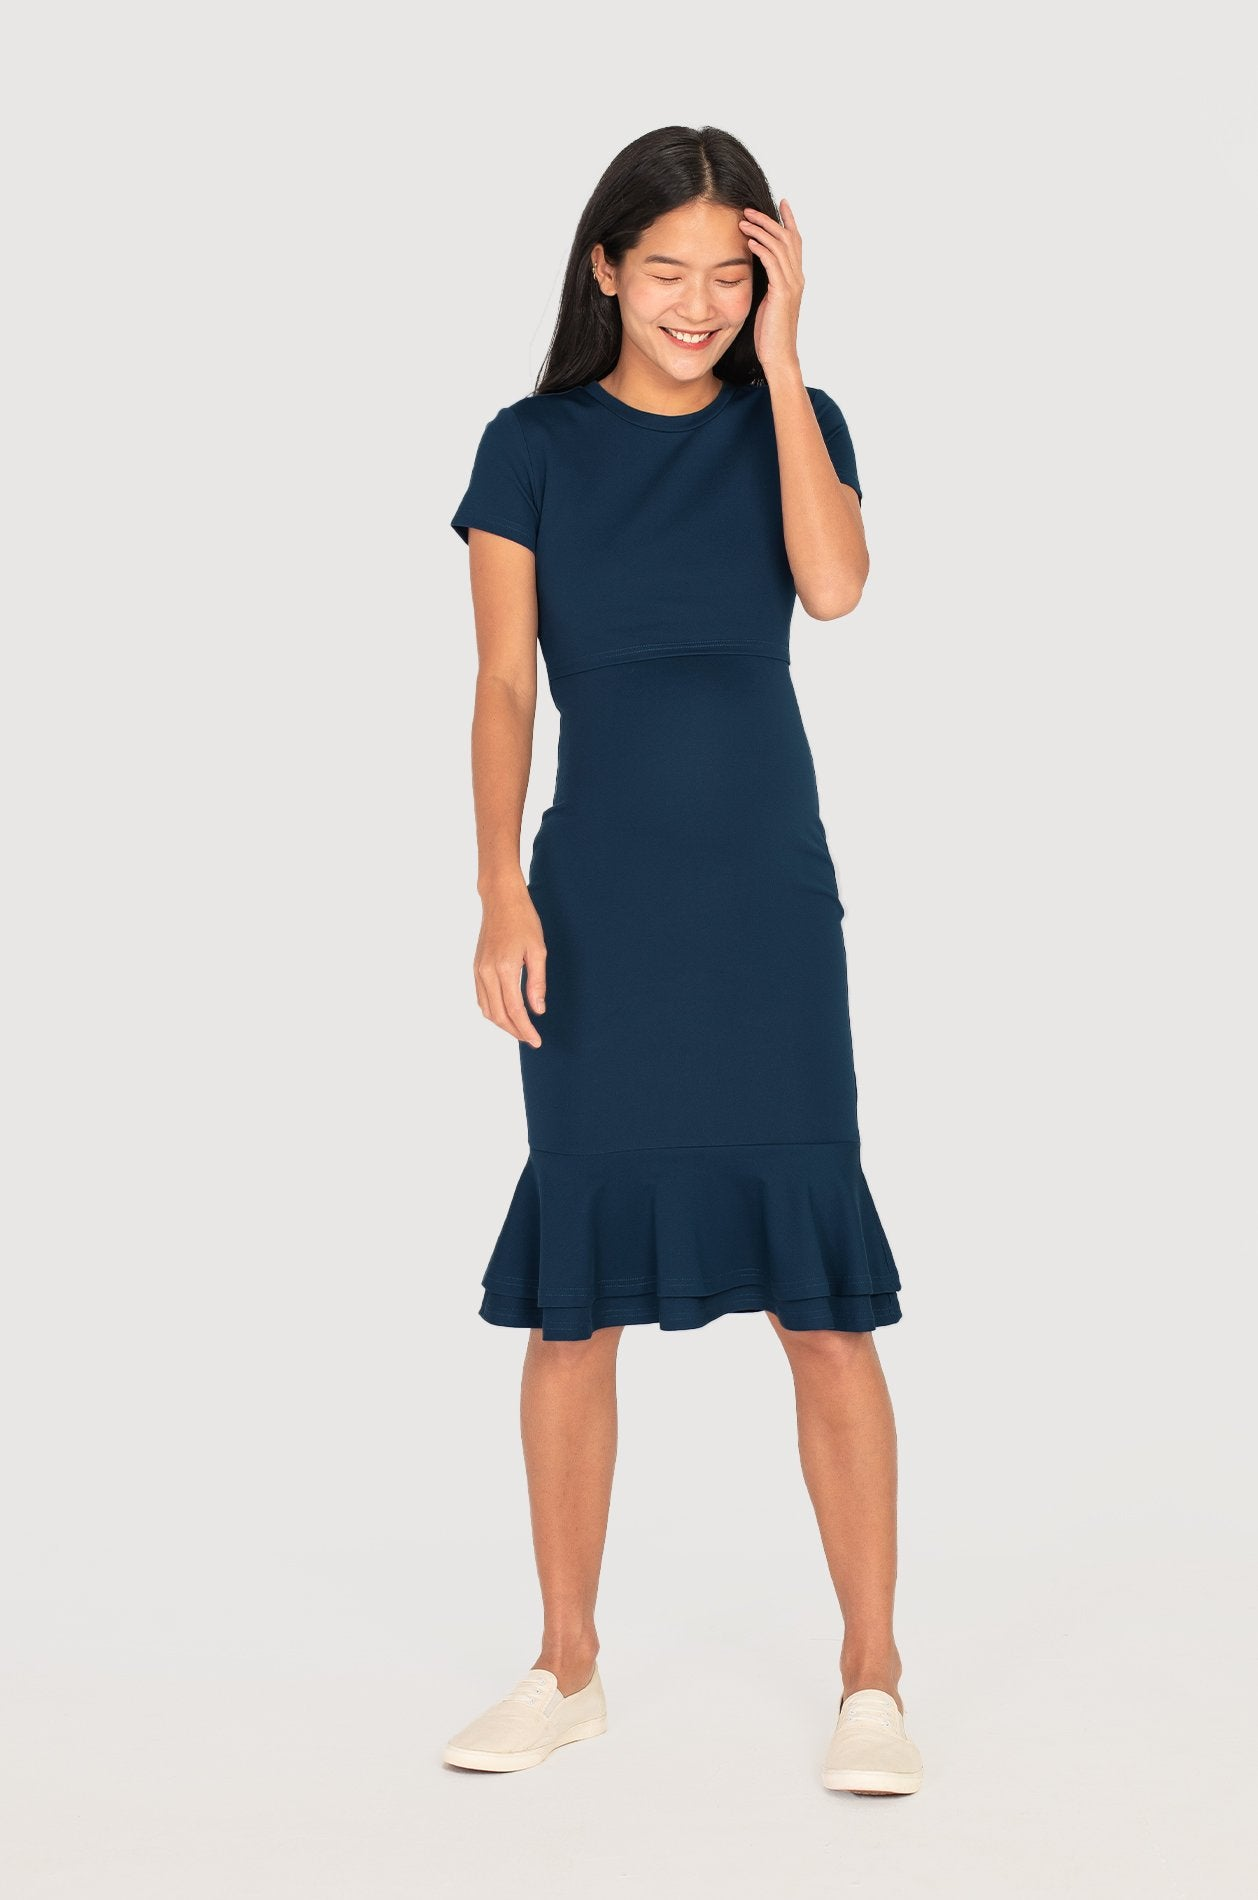 Mermaid Hem Bodycon Nursing Dress in Navy Nursing Wear Jump Eat Cry